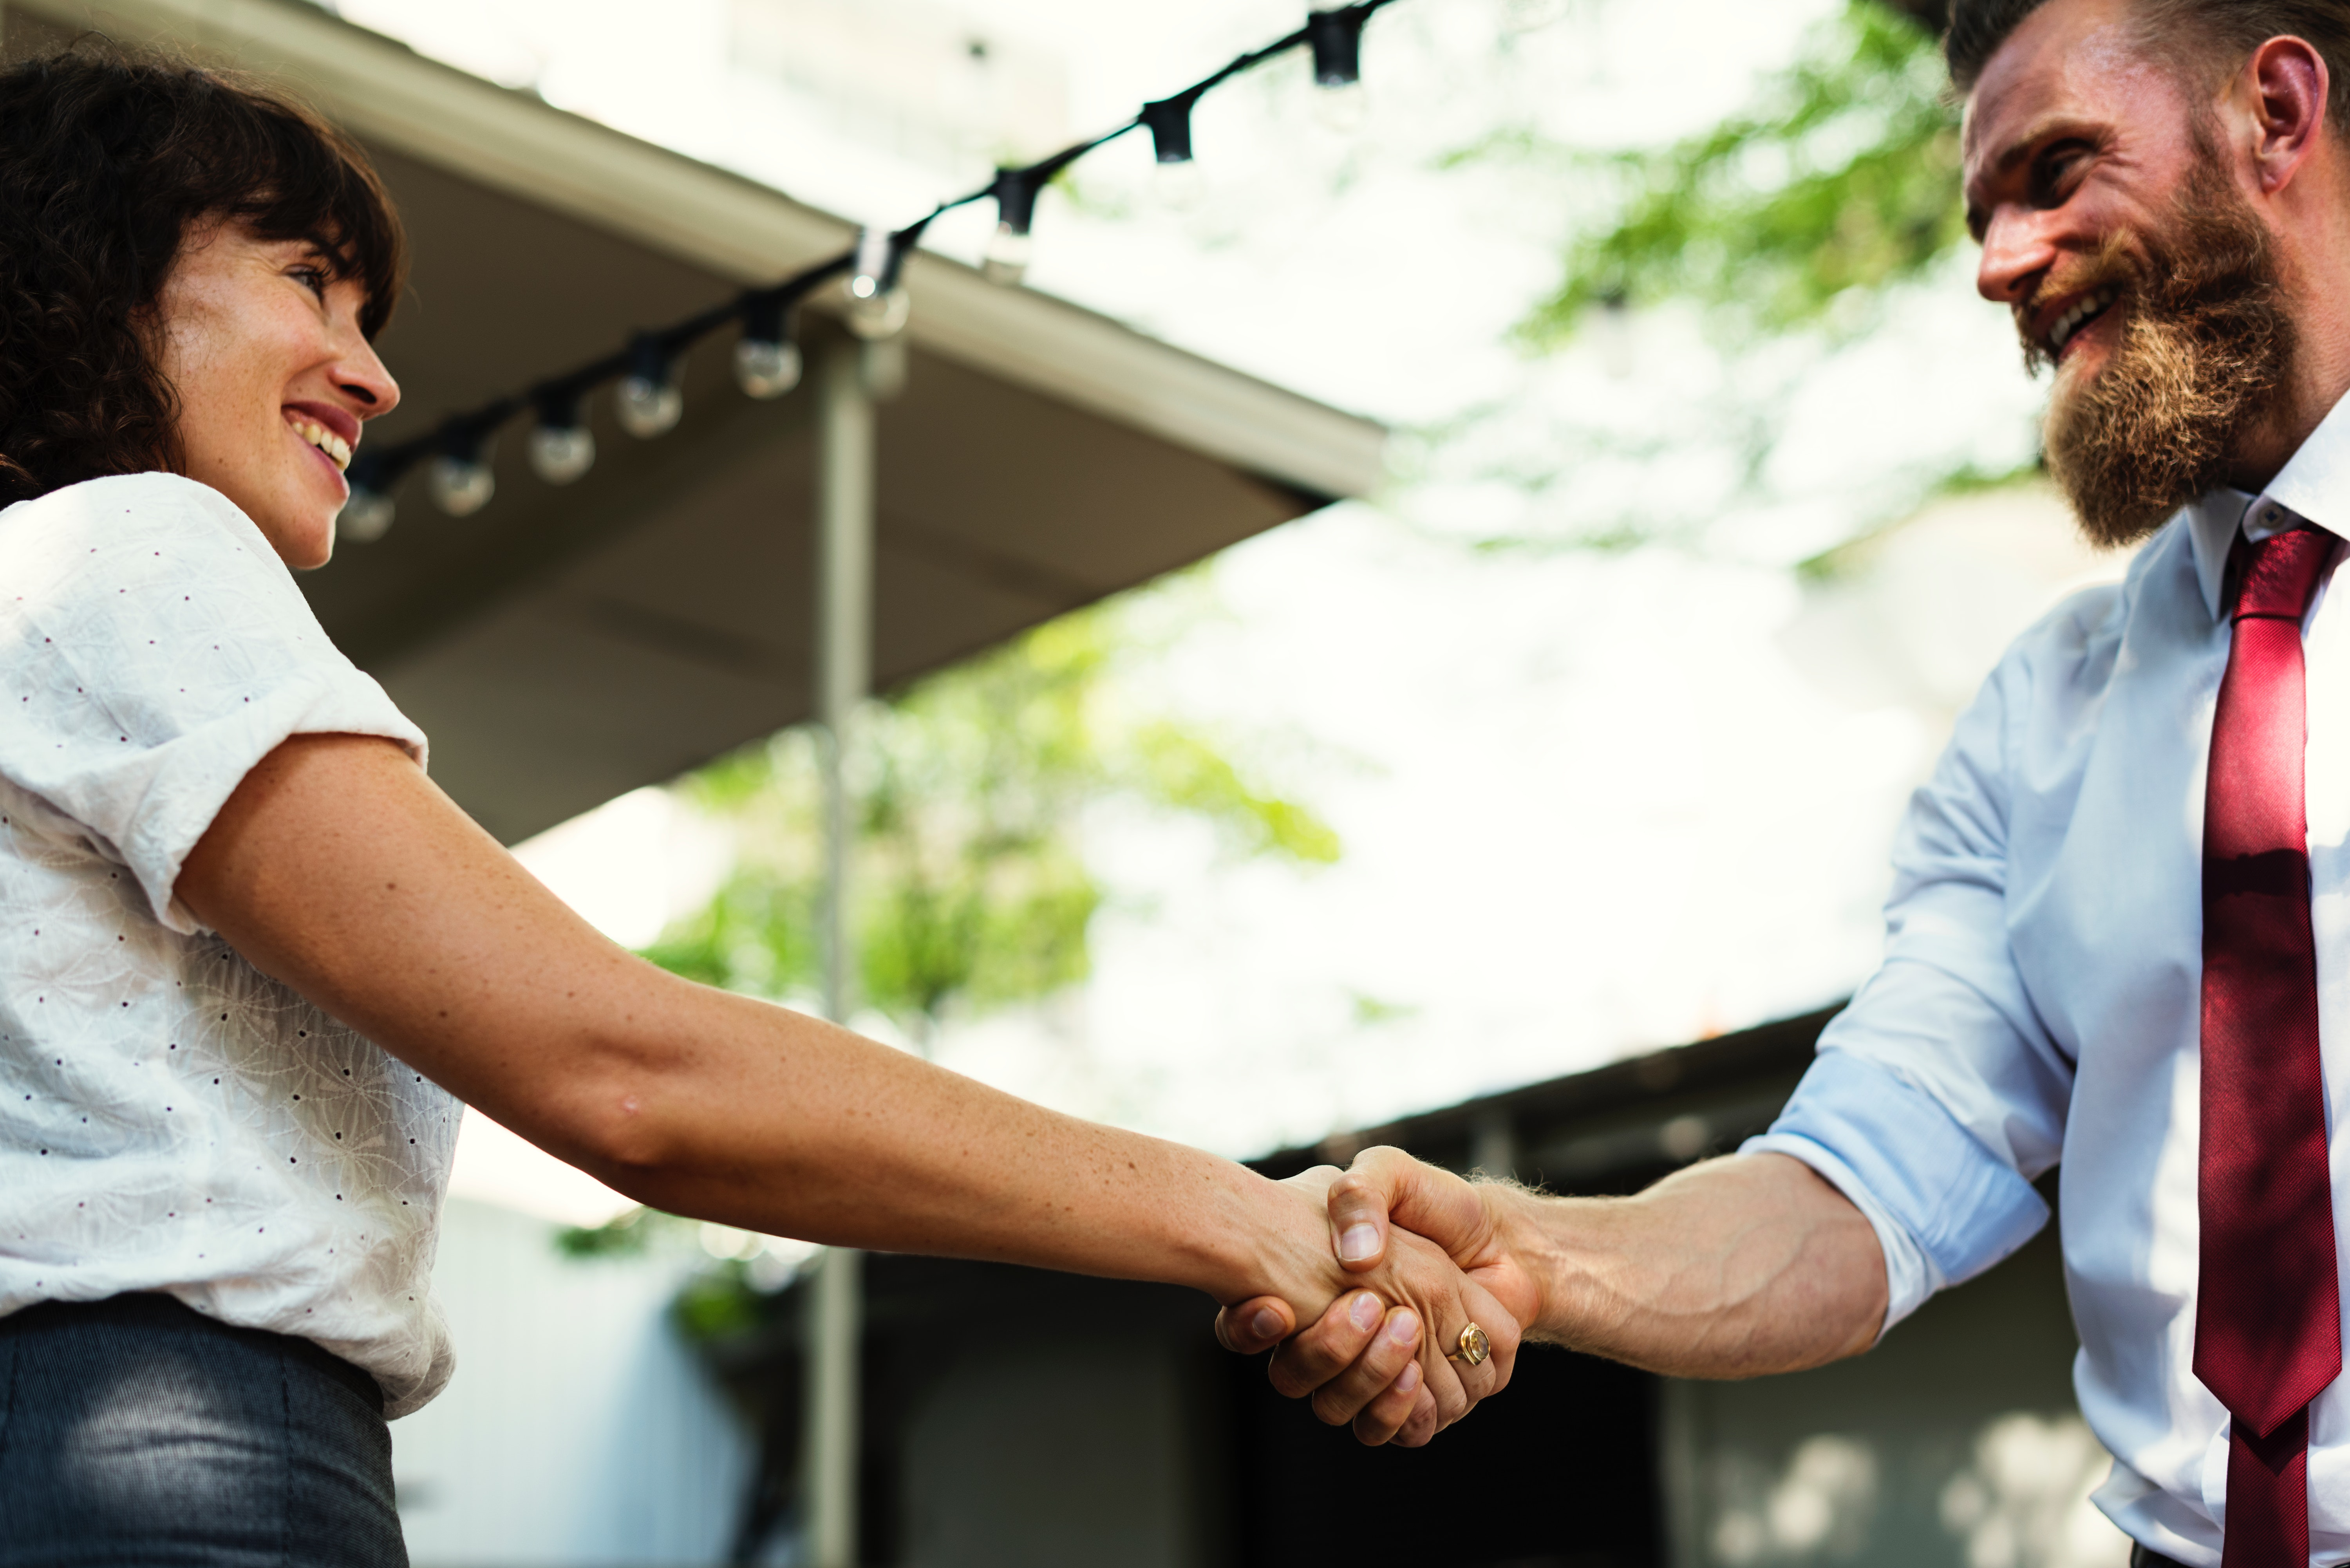 5 tips for networking with purpose at your next event